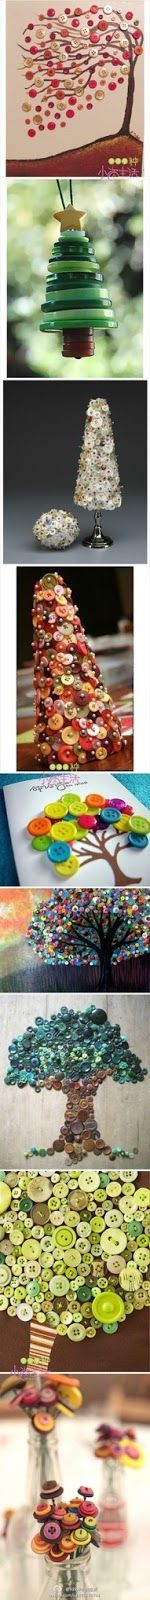 Decorate with Buttons... not a tutorial, but it might give me inspiration for a proejct... http://micasainventada.blogspot.com/2012/10/decore-con-botones.html#